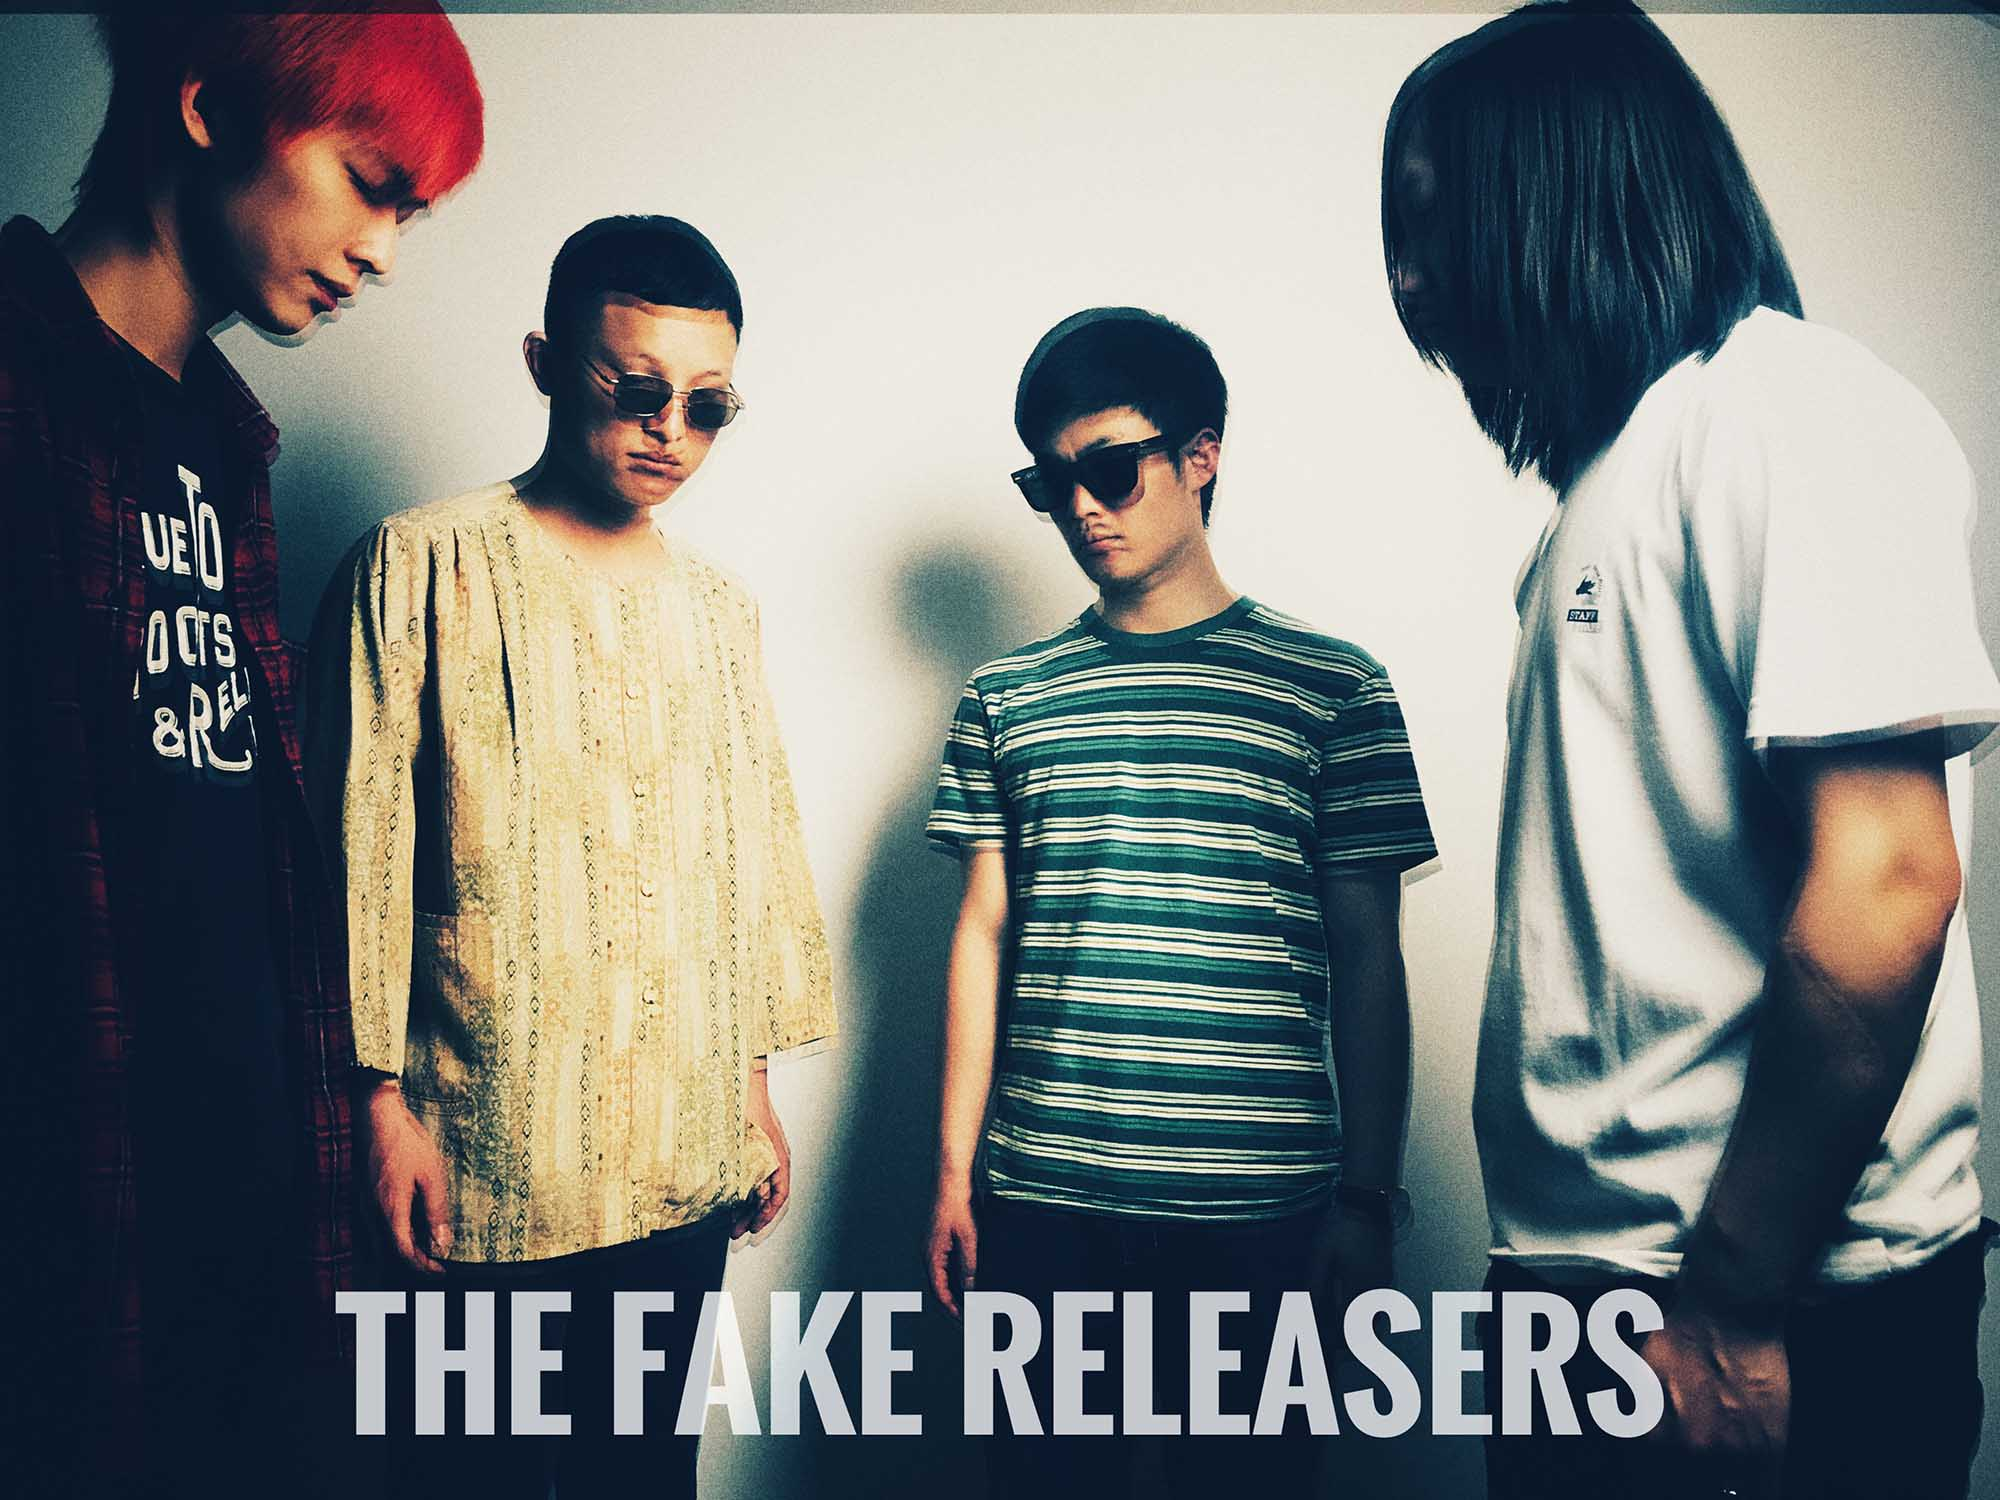 The Fake Releasers